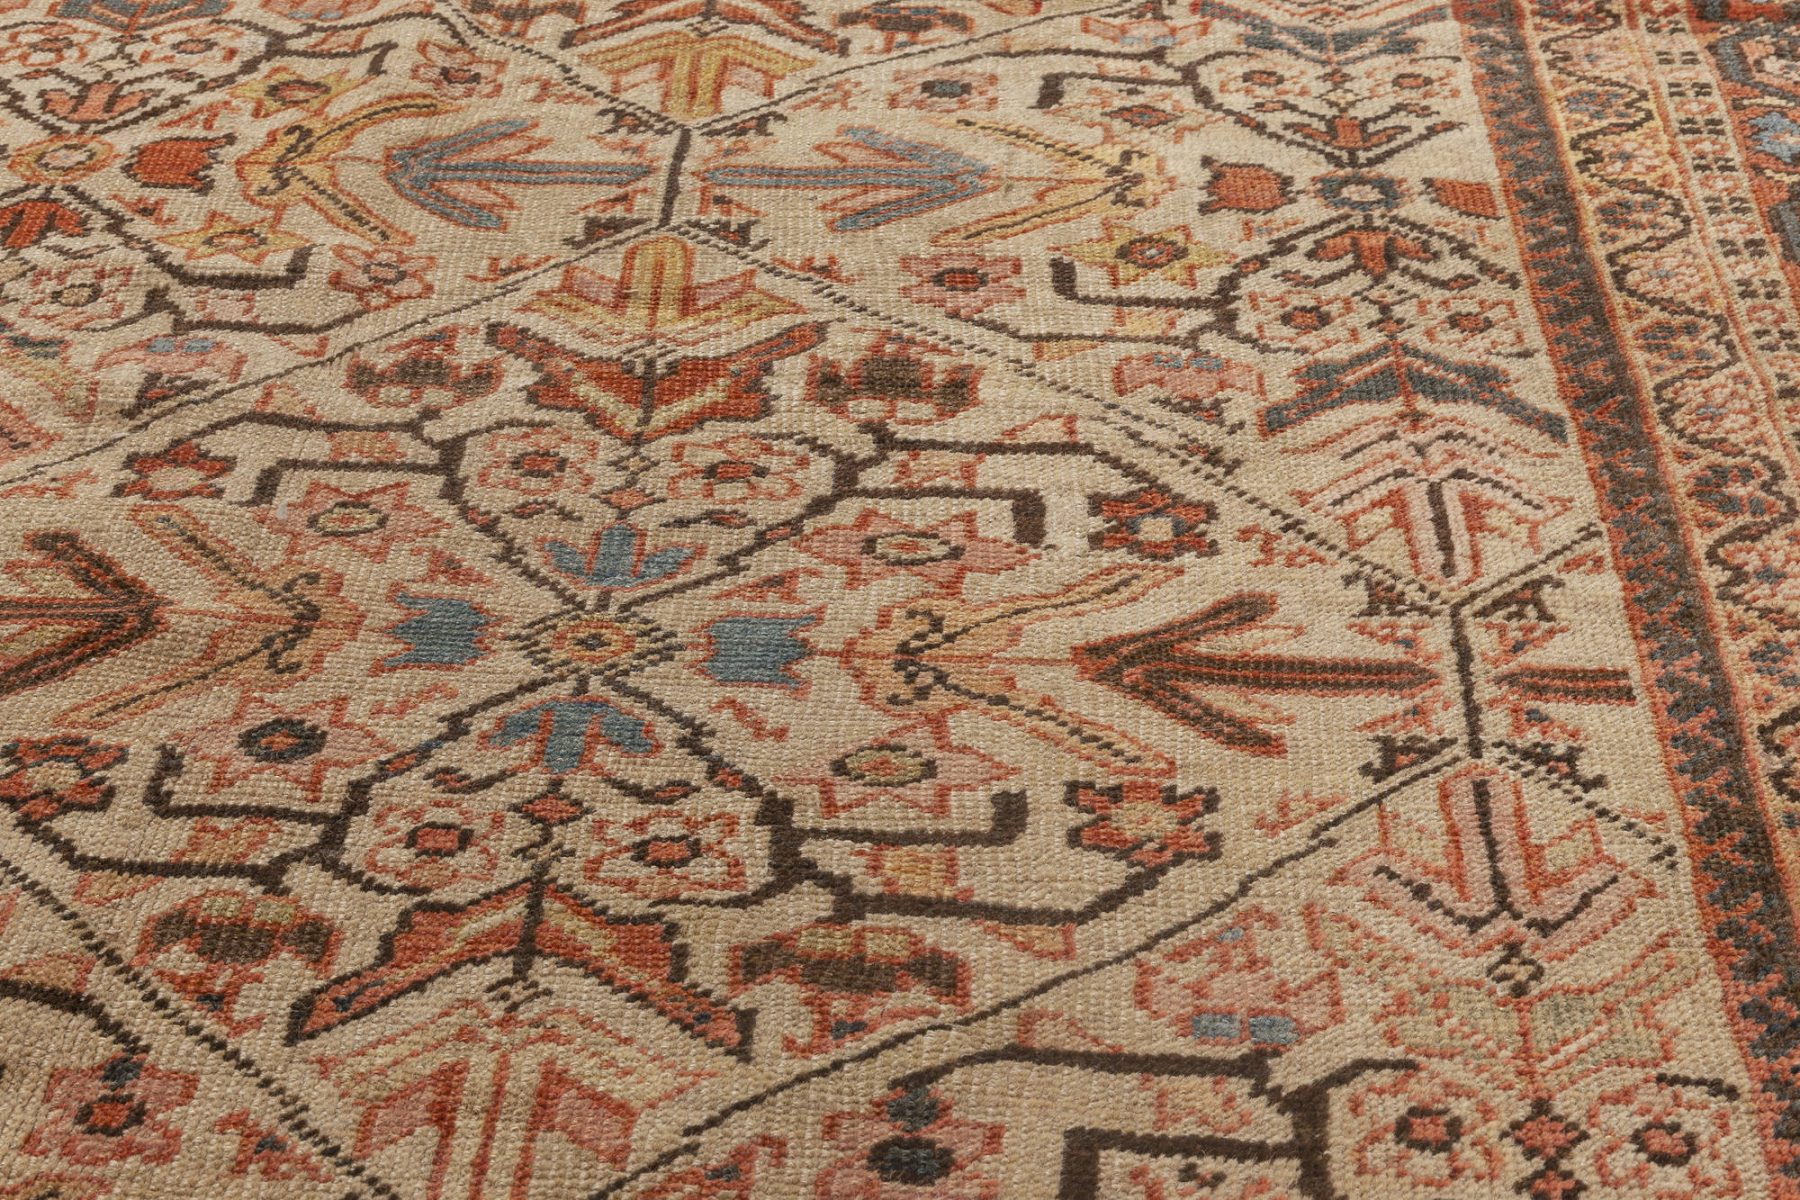 Antique Persian Sultanabad Beige, Blue, Brown and Orange Rug BB7028